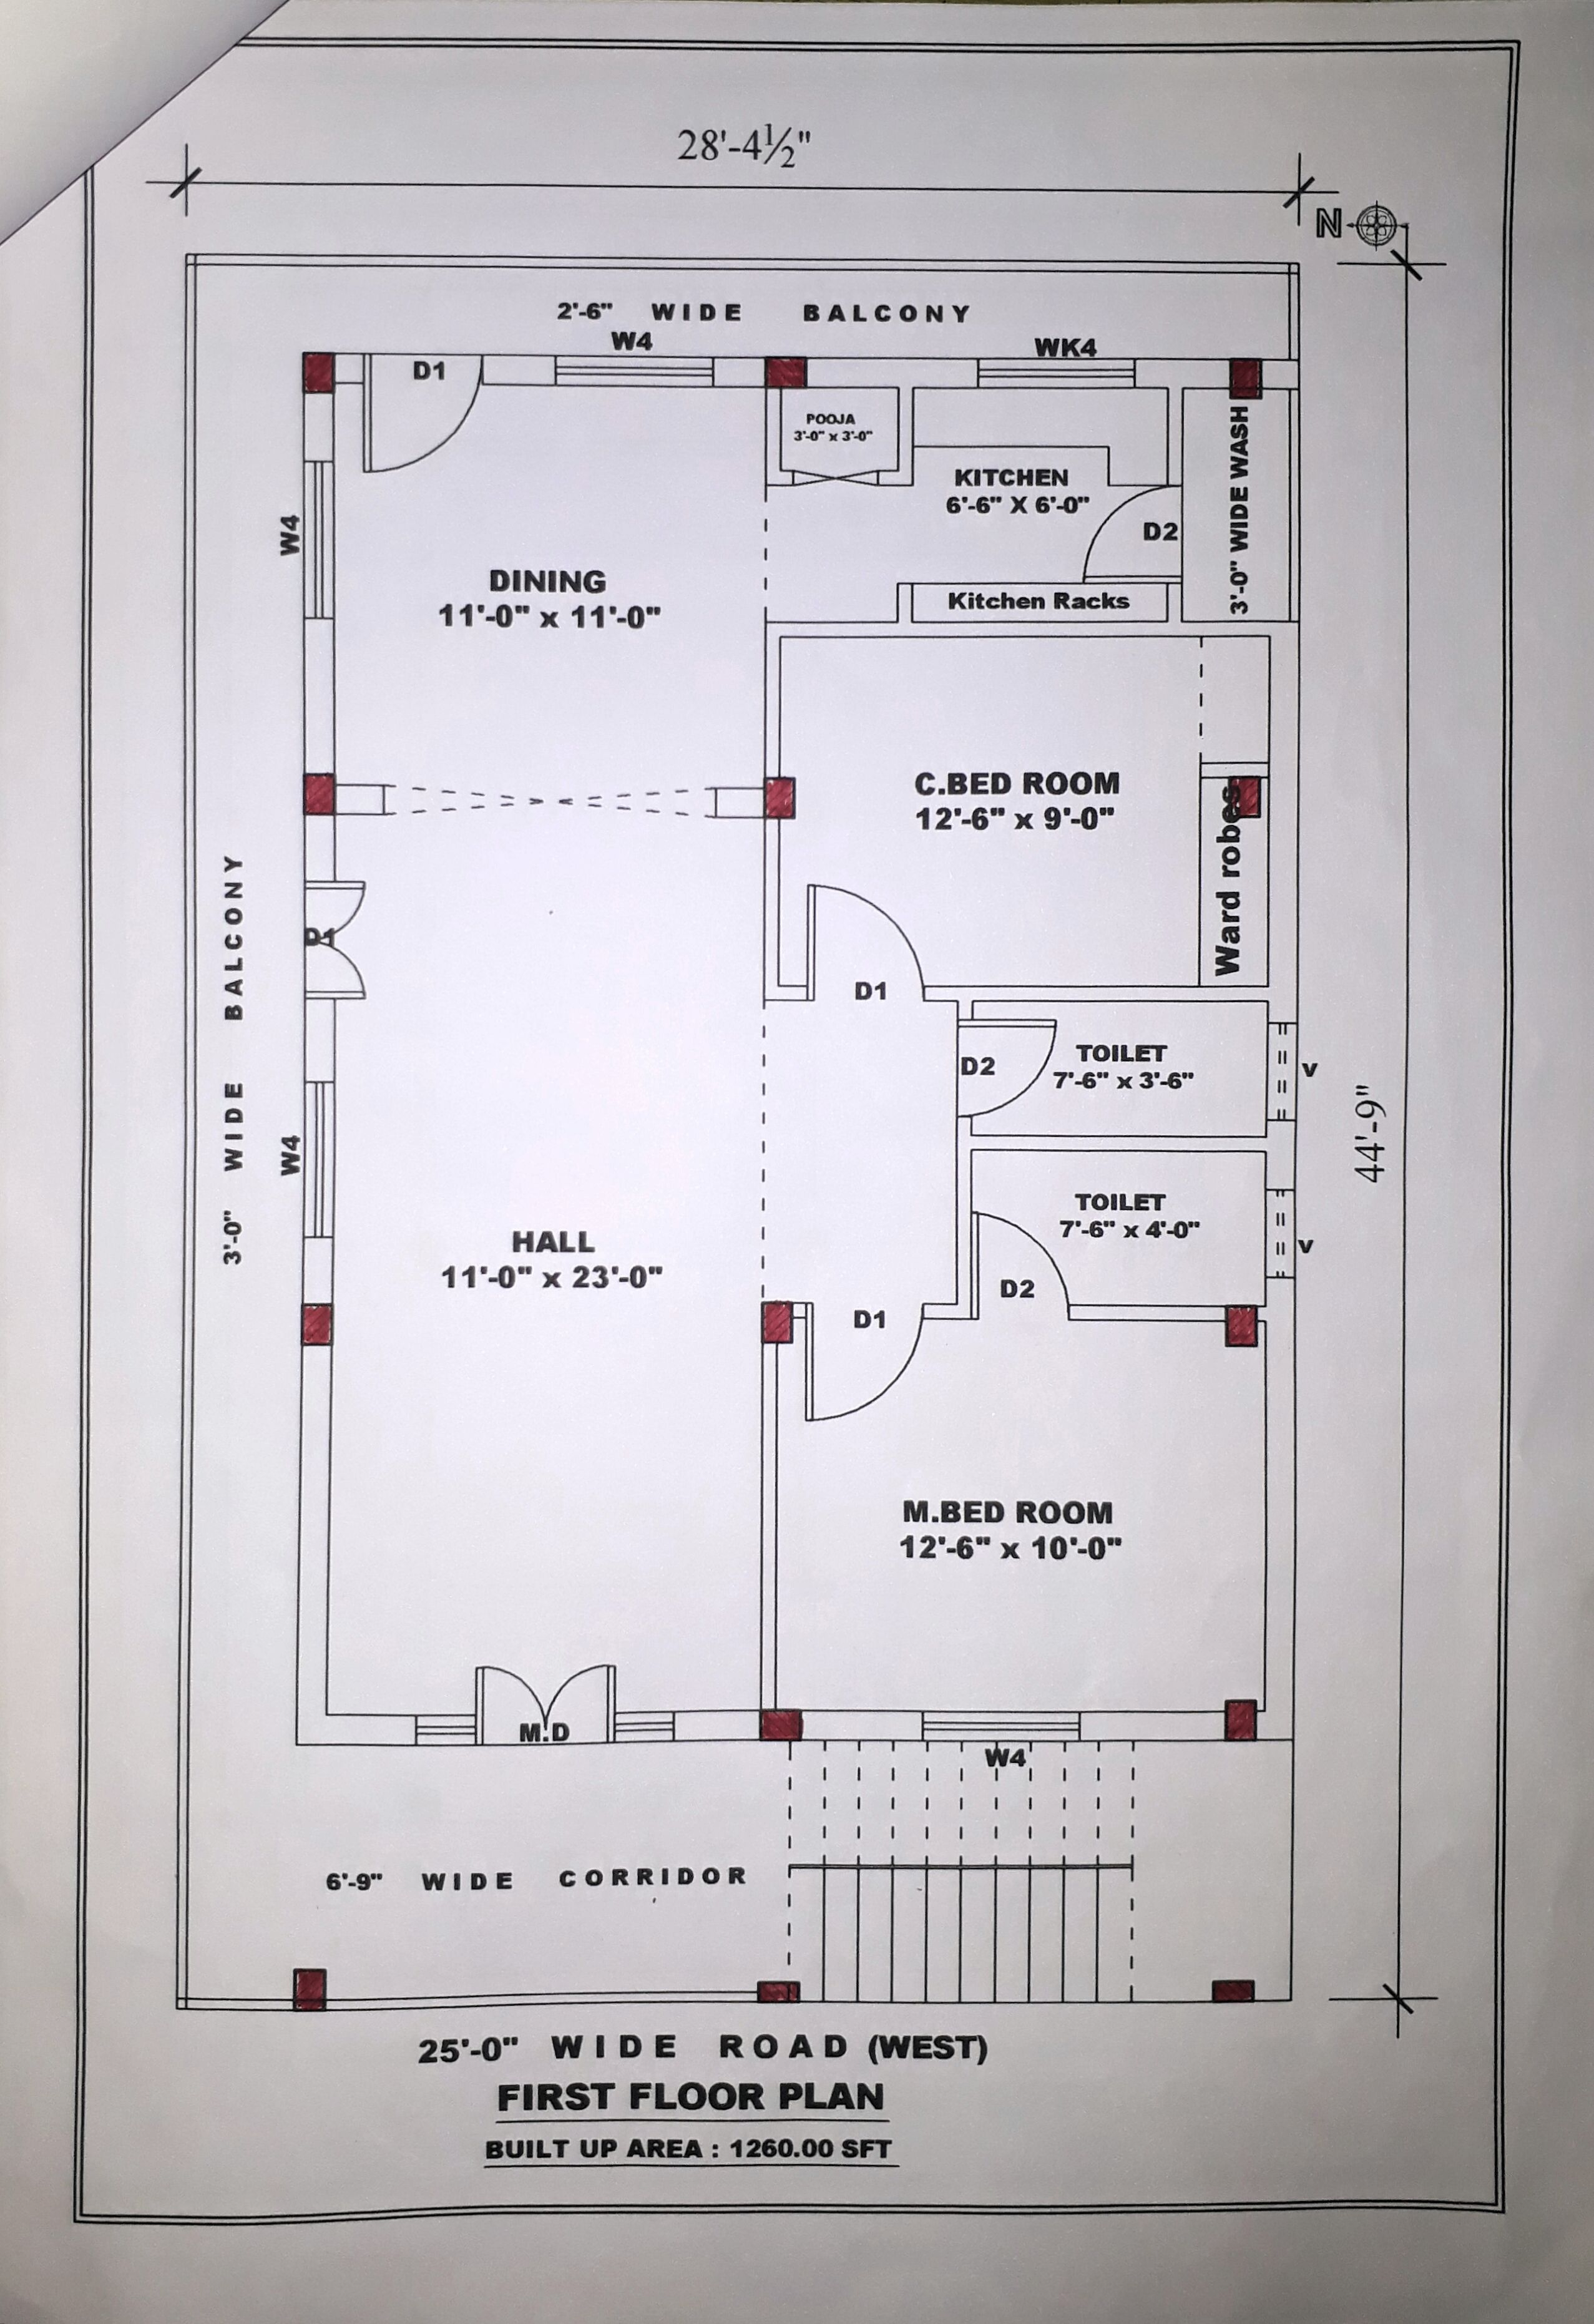 Image Result For 2 Bhk Floor Plans Of 25 45 20x40 House Plans 30x40 House Plans 2bhk House Plan